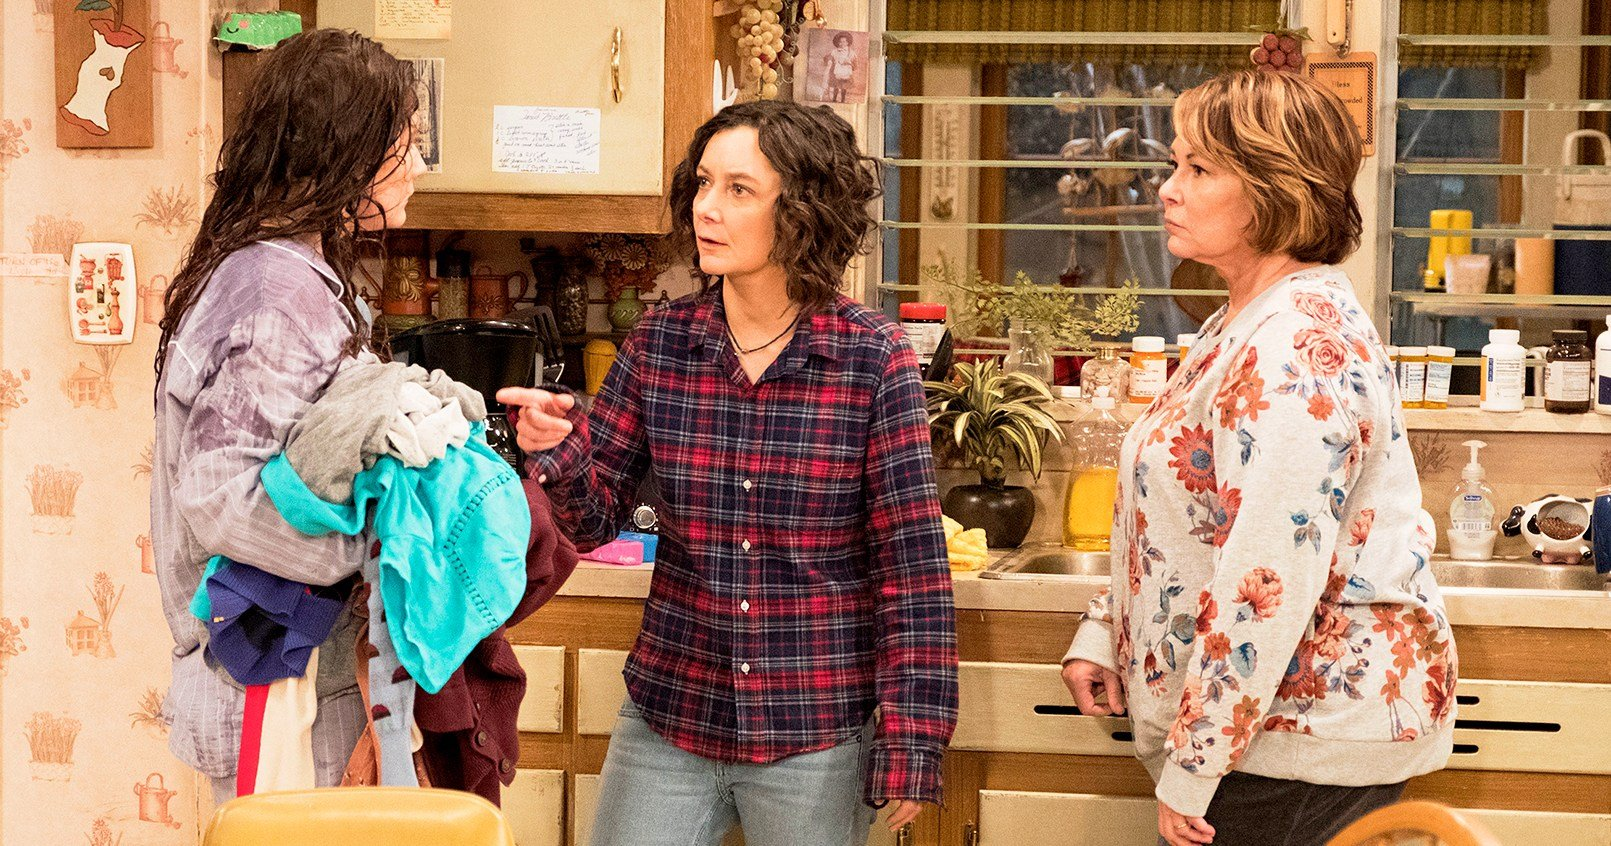 'Roseanne' Could Return With Sara Gilbert's Darlene as Lead: Reports